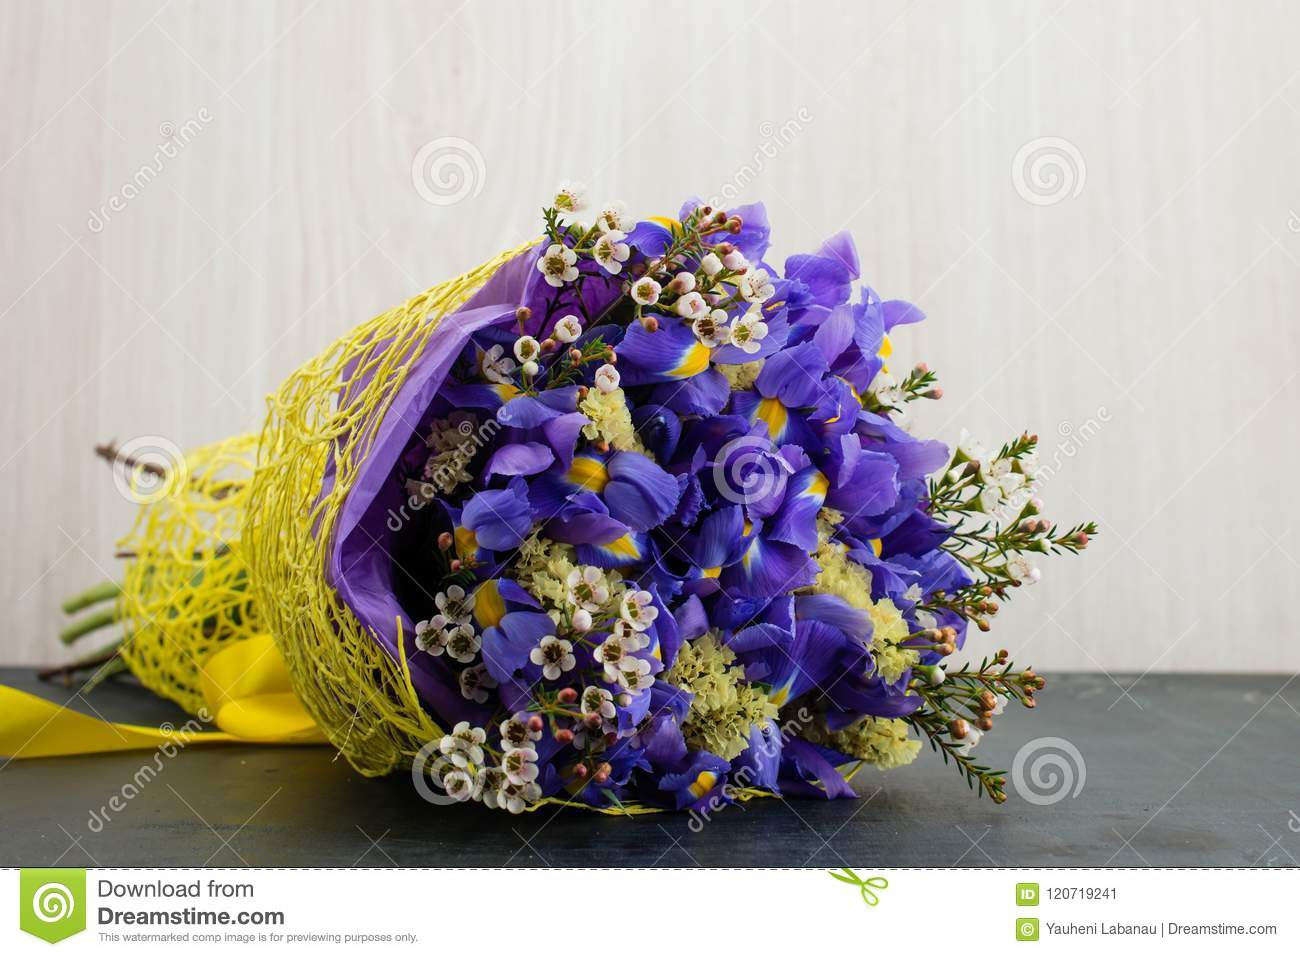 Bouquet of bell flowers stock image image of blossom 120719241 bouquet of blooming blue bell and little yellow flowers wrapped in paper on dark table wooden background izmirmasajfo